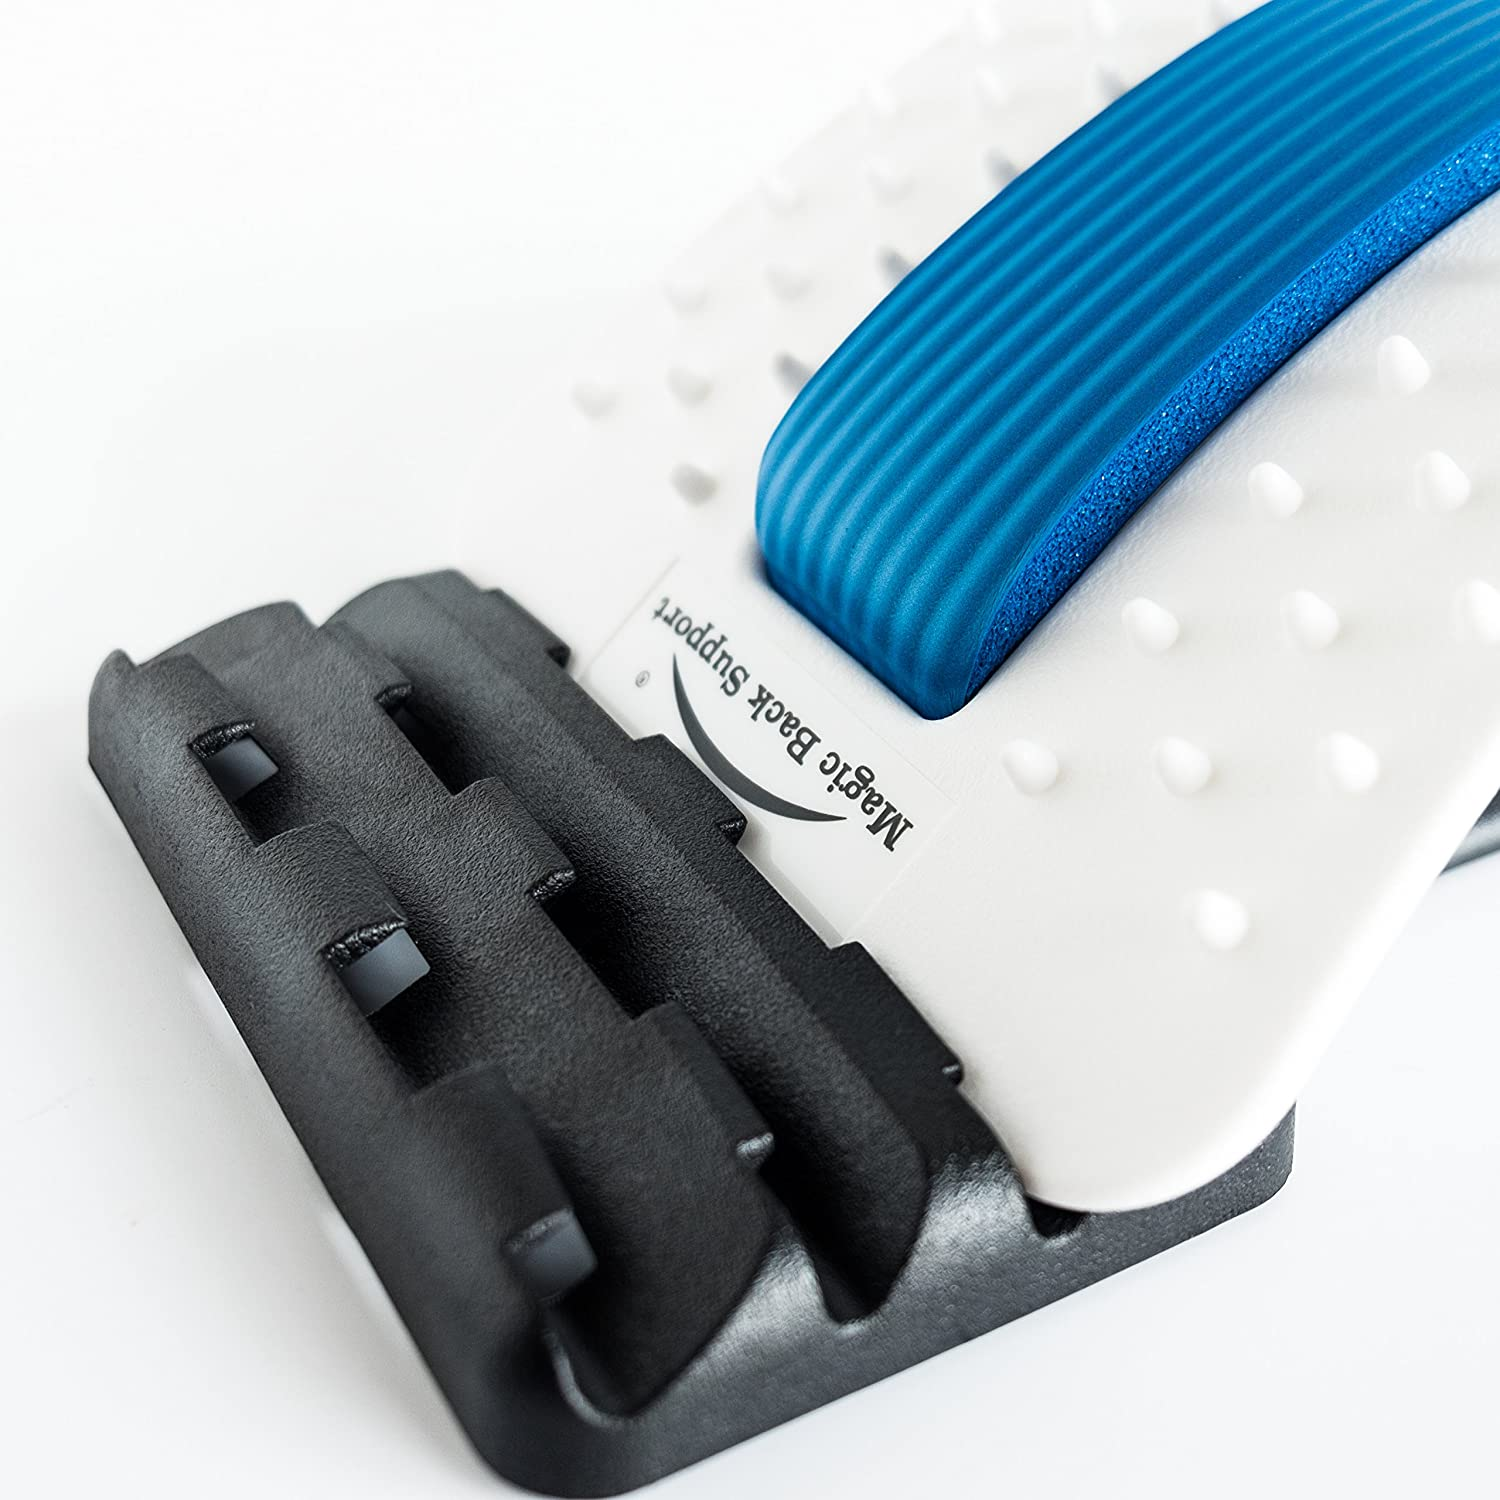 With Accupressure Points Stretcher Device Unique Soft Form Central Support Best Lumbar Support for Chronic Back Pain Relief Lower Back Pain Treatment GentFit/® Multi-Level Back Stretcher